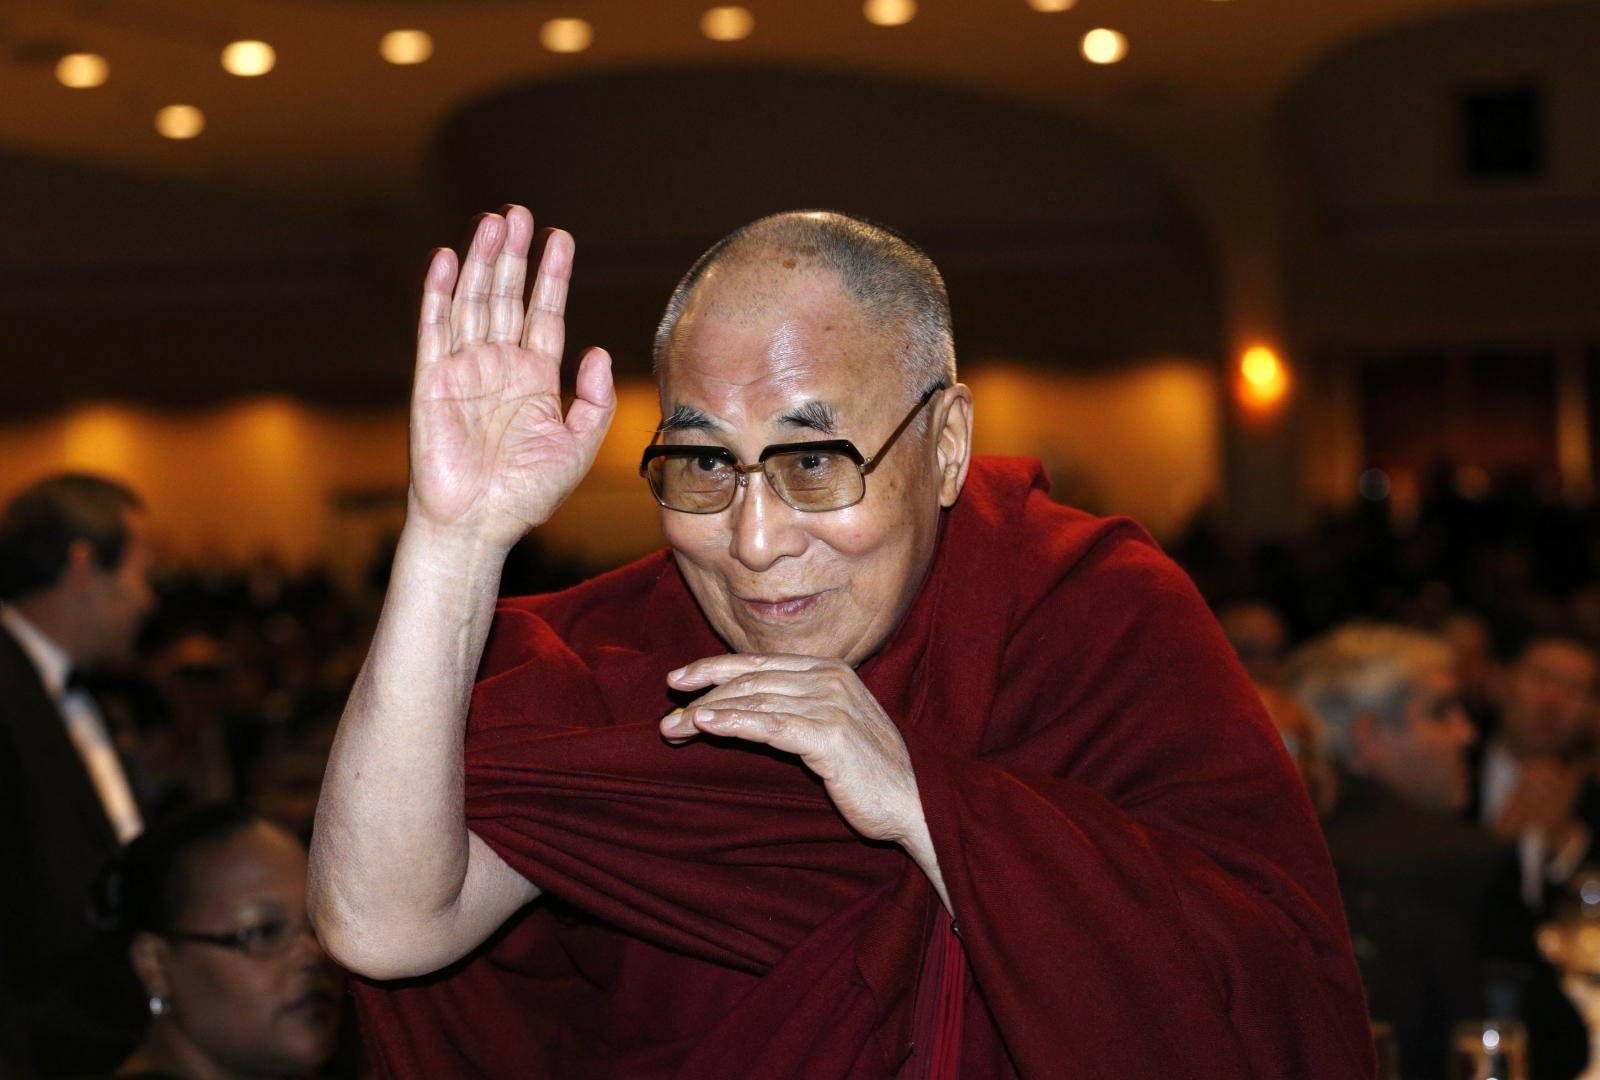 Obama calls Dalai Lama a friend and inspiration